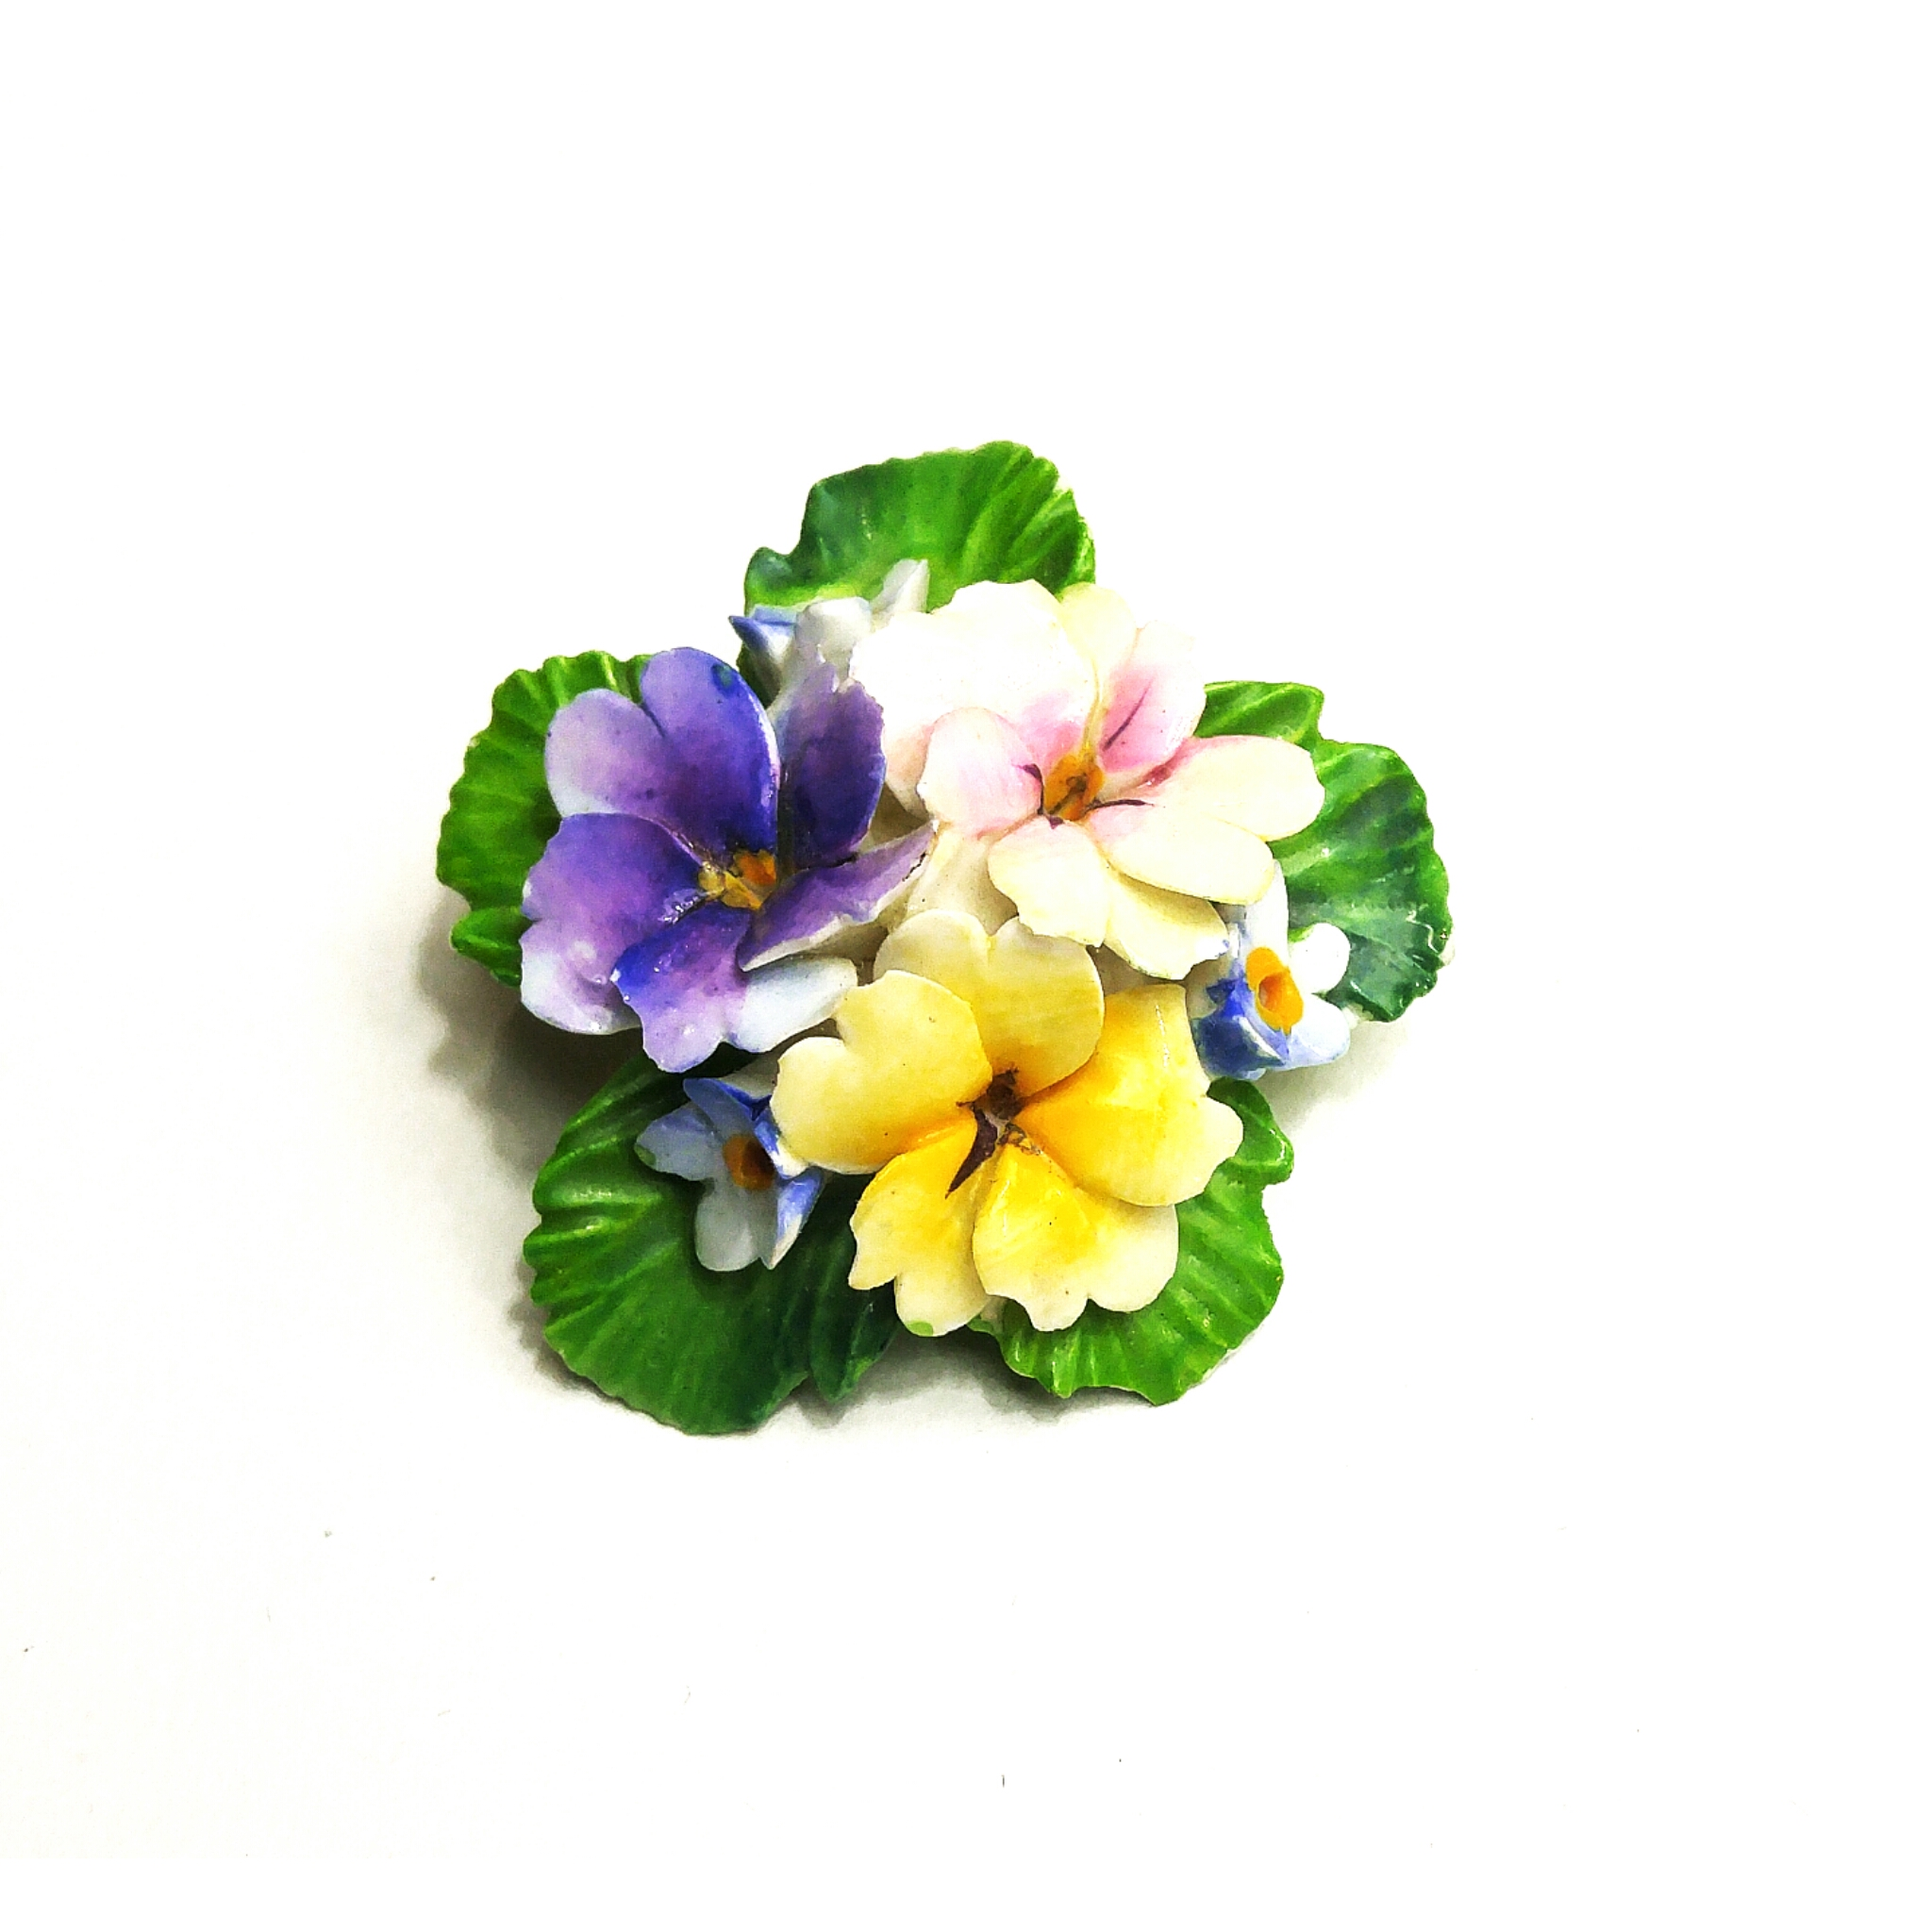 Ceramic hand painted flower brooch.